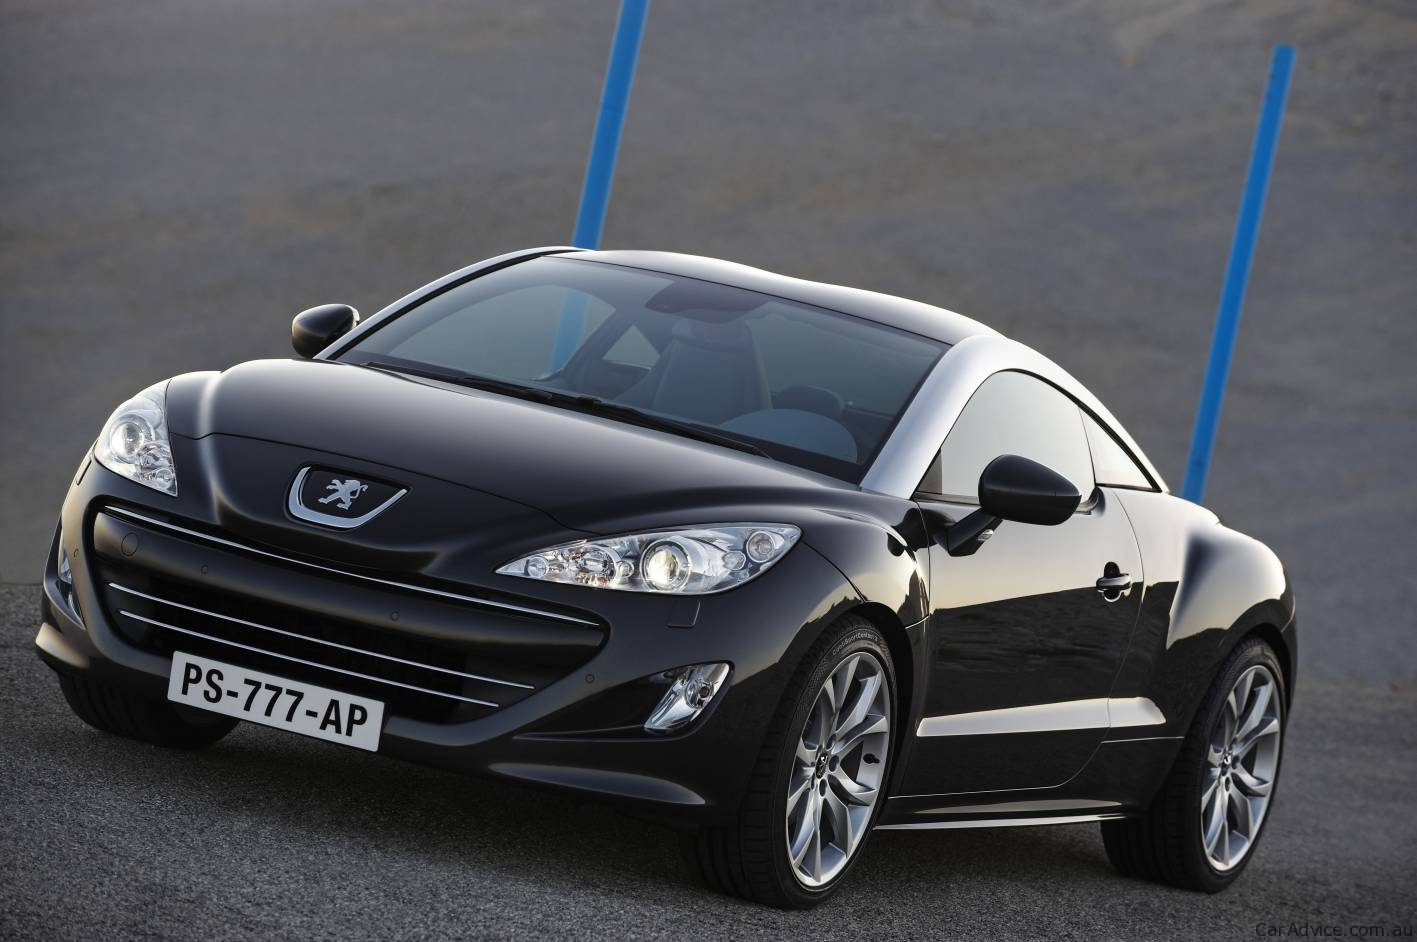 2010 peugeot rcz sports coupe orders almost exceed allocation photos 1 of 5. Black Bedroom Furniture Sets. Home Design Ideas